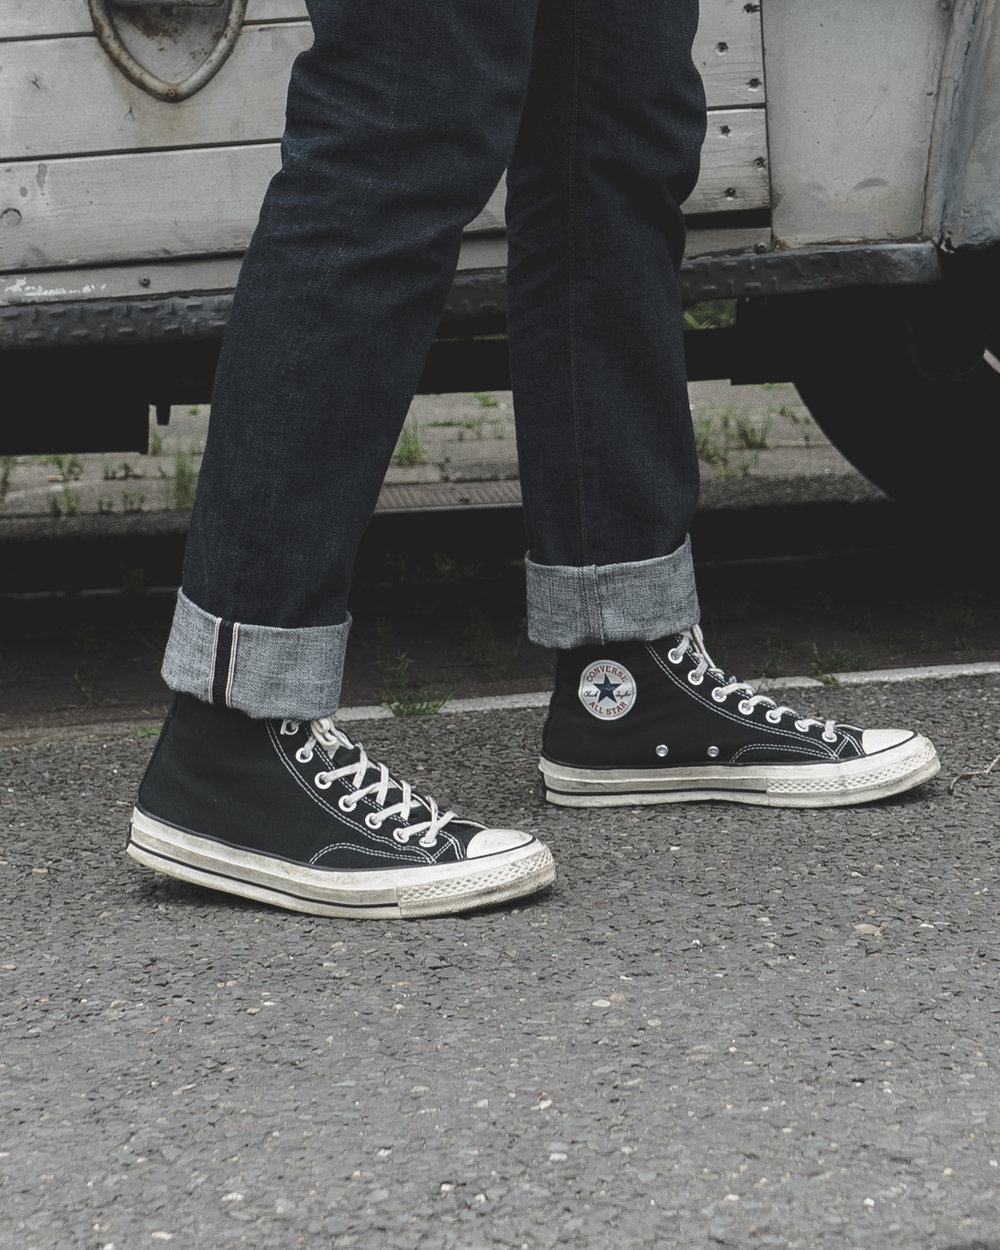 classic mens style - converse Chuck Taylor 70s and japanese selvedge denim